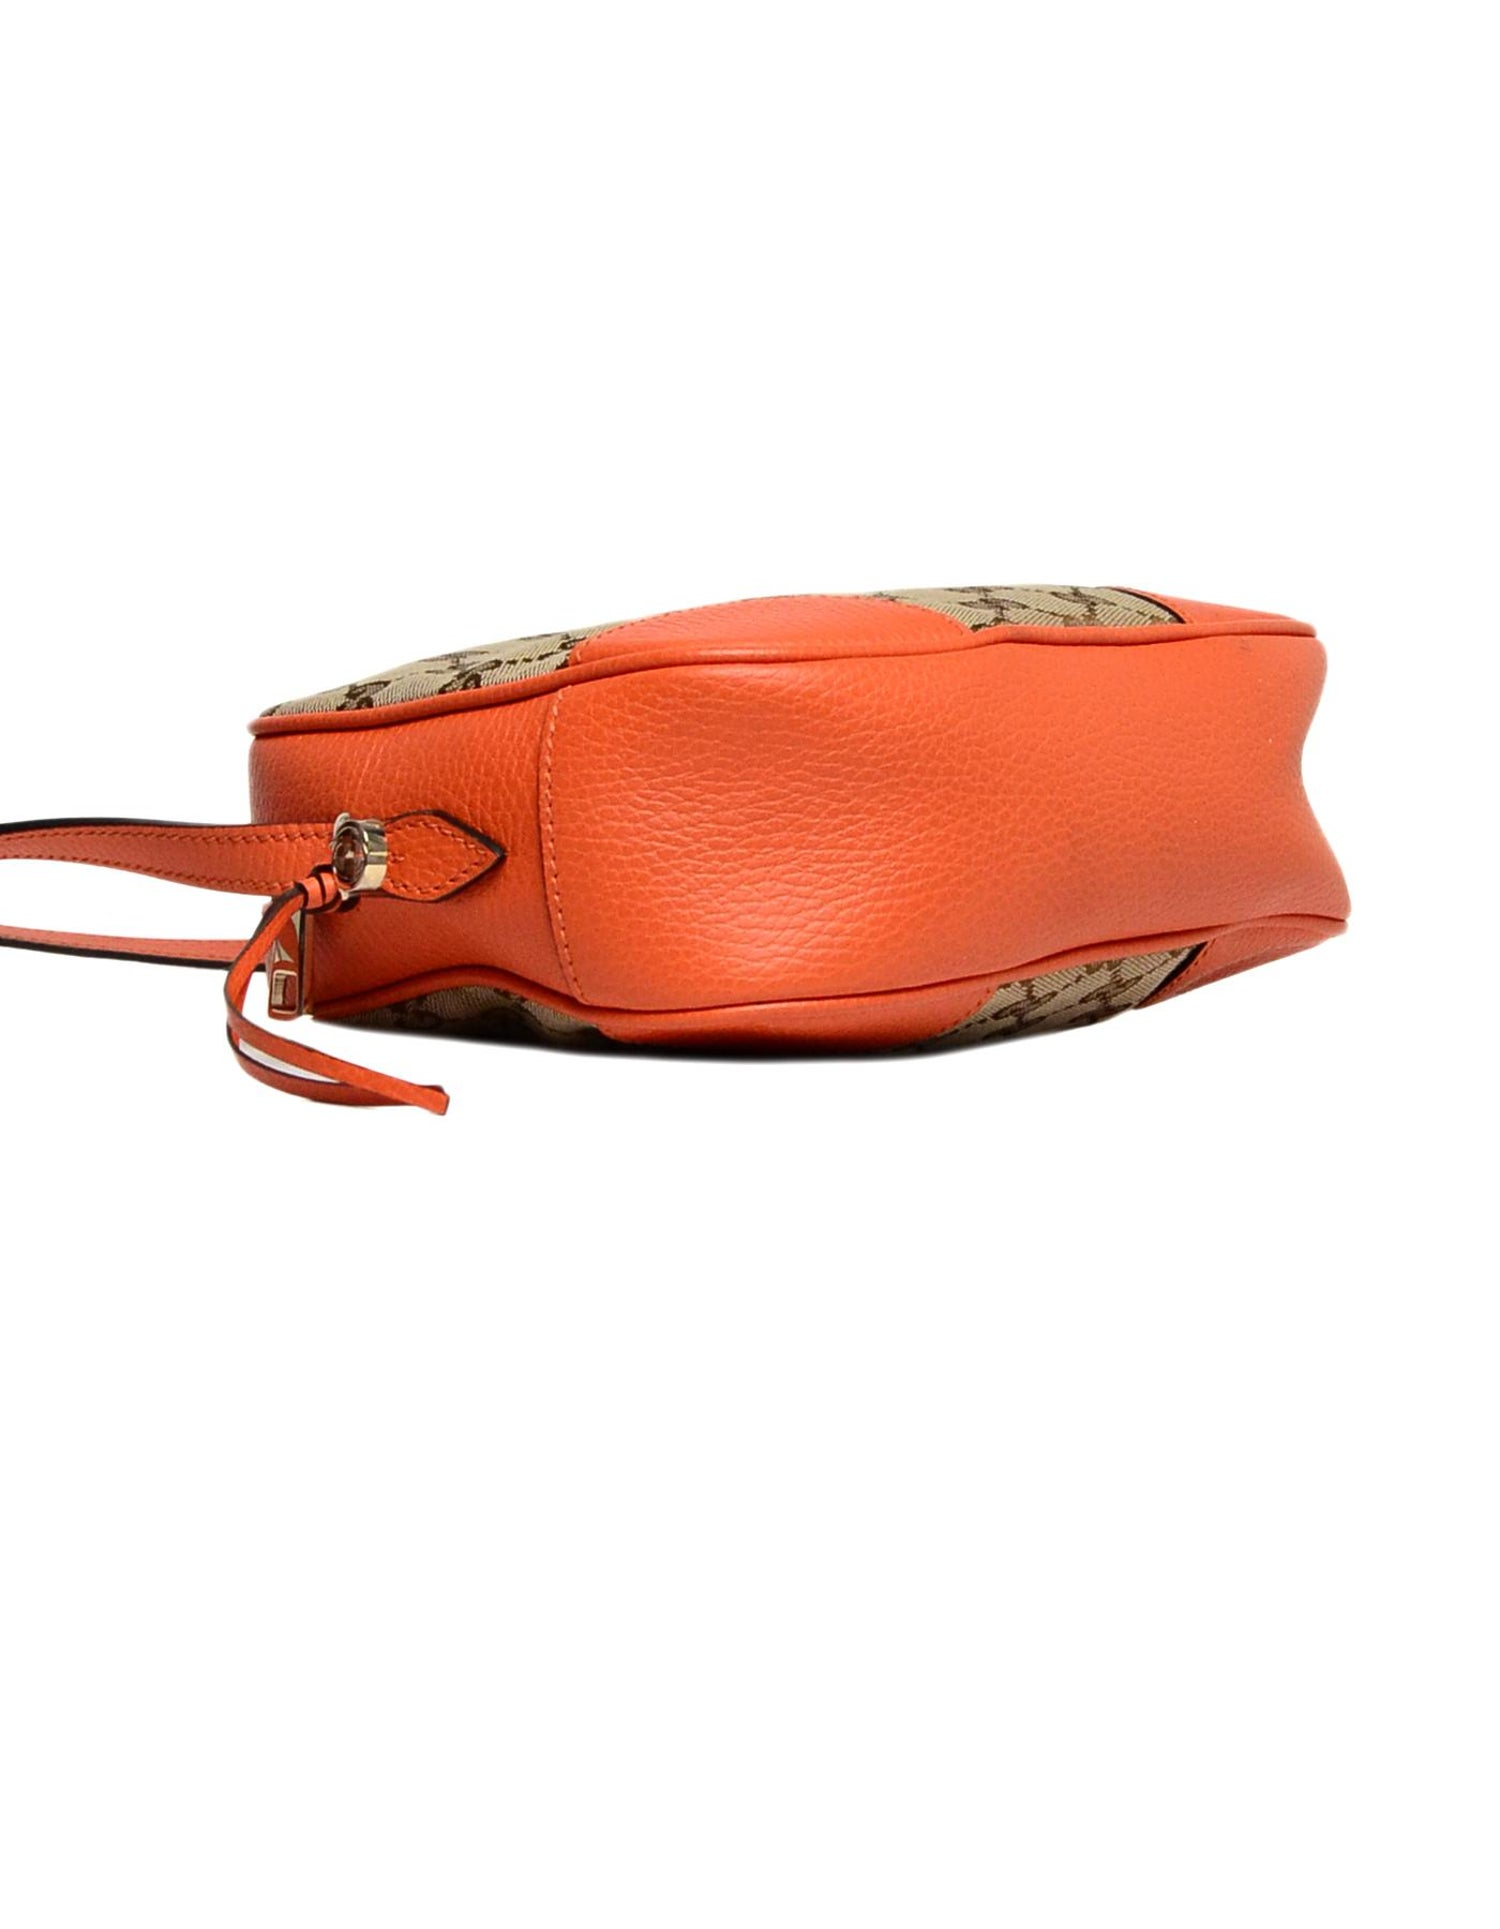 b33b74a59 Gucci Orange Leather/GG Monogram Bree Crossbody Bag For Sale at 1stdibs